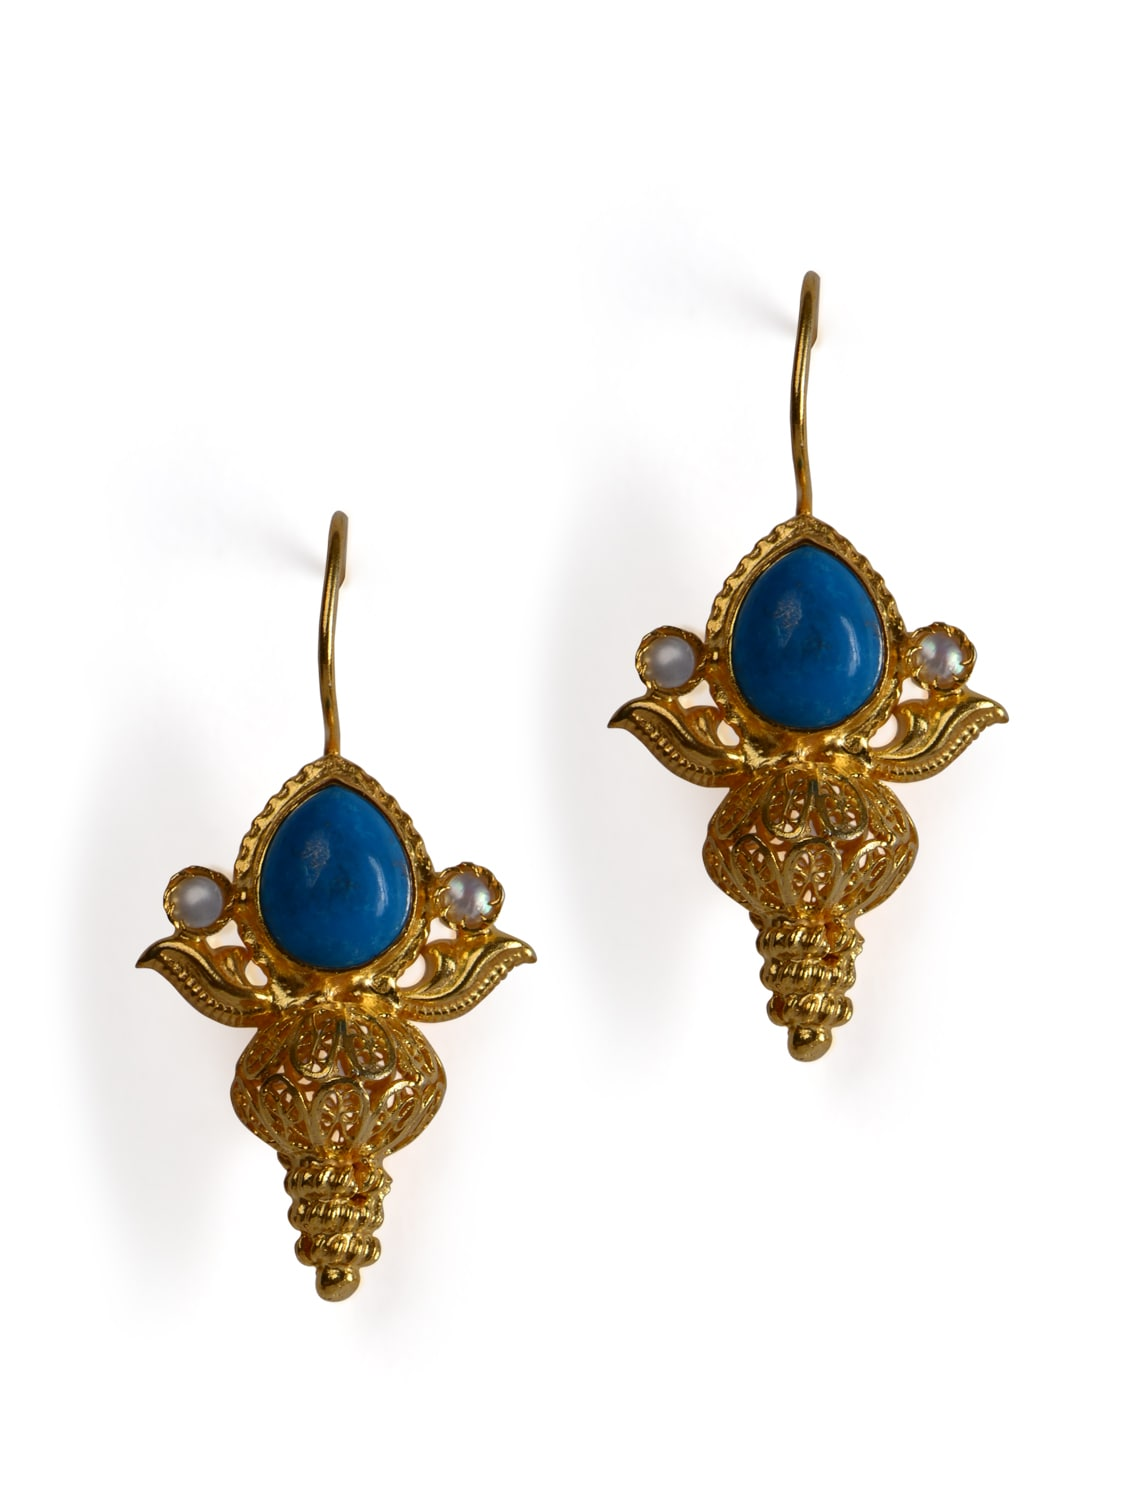 Gold Plated Danglers With Turquoise Blue Stone - Posy Samriddh